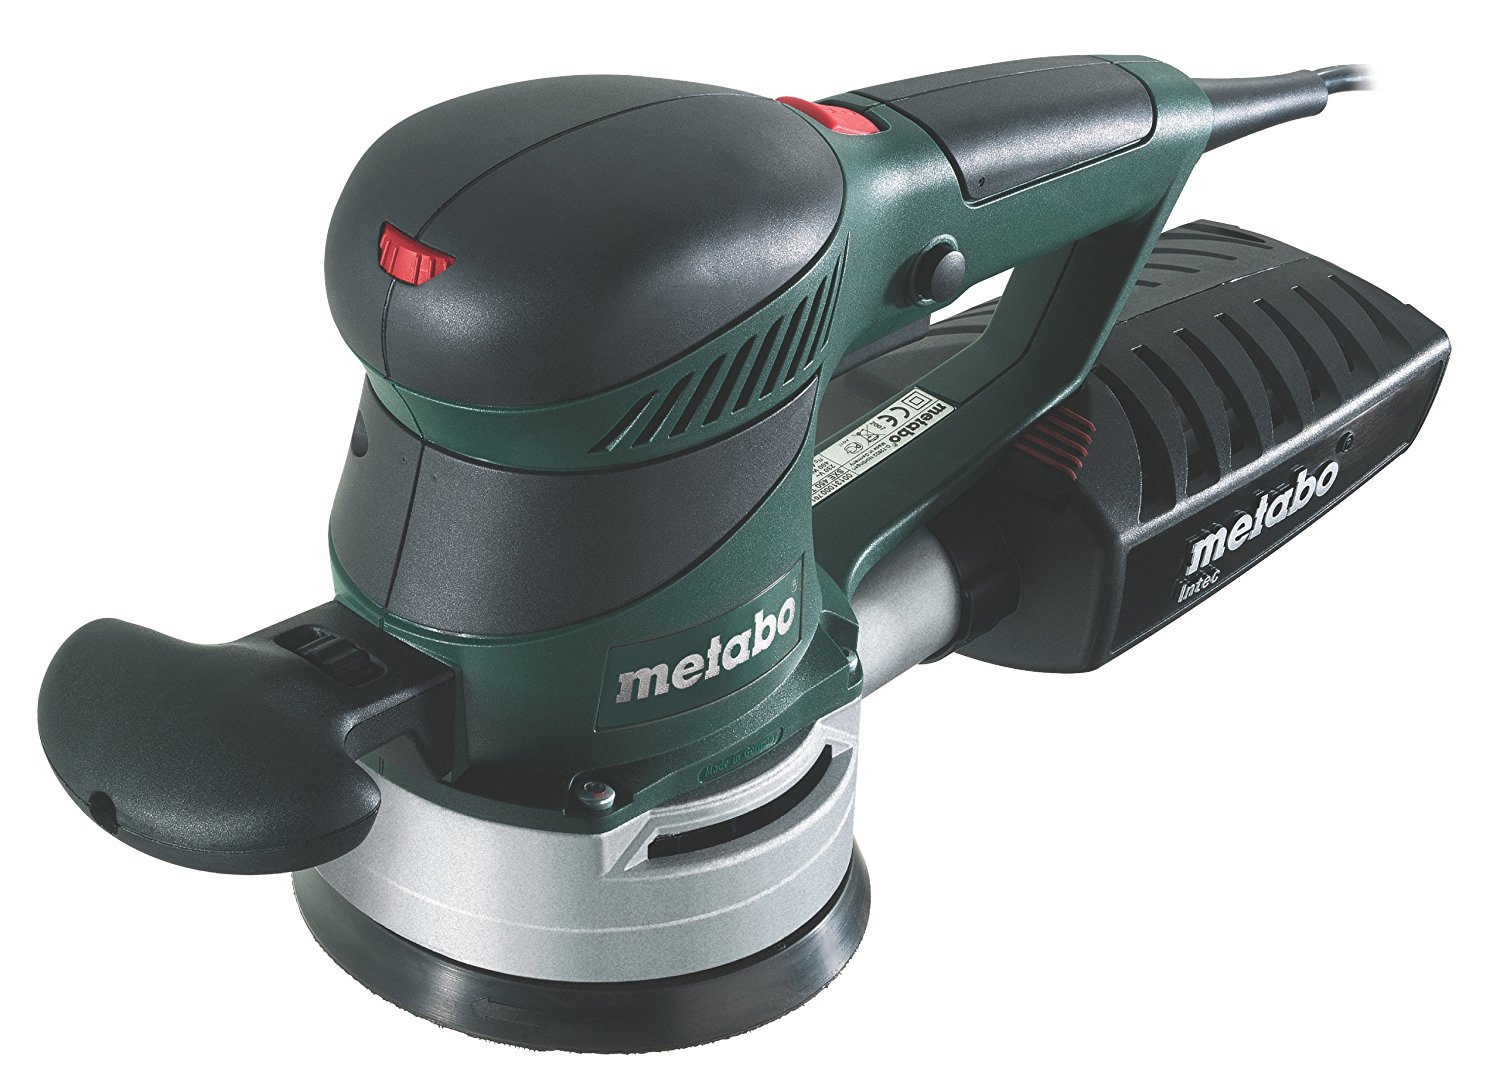 ponceuse metabo turbotec